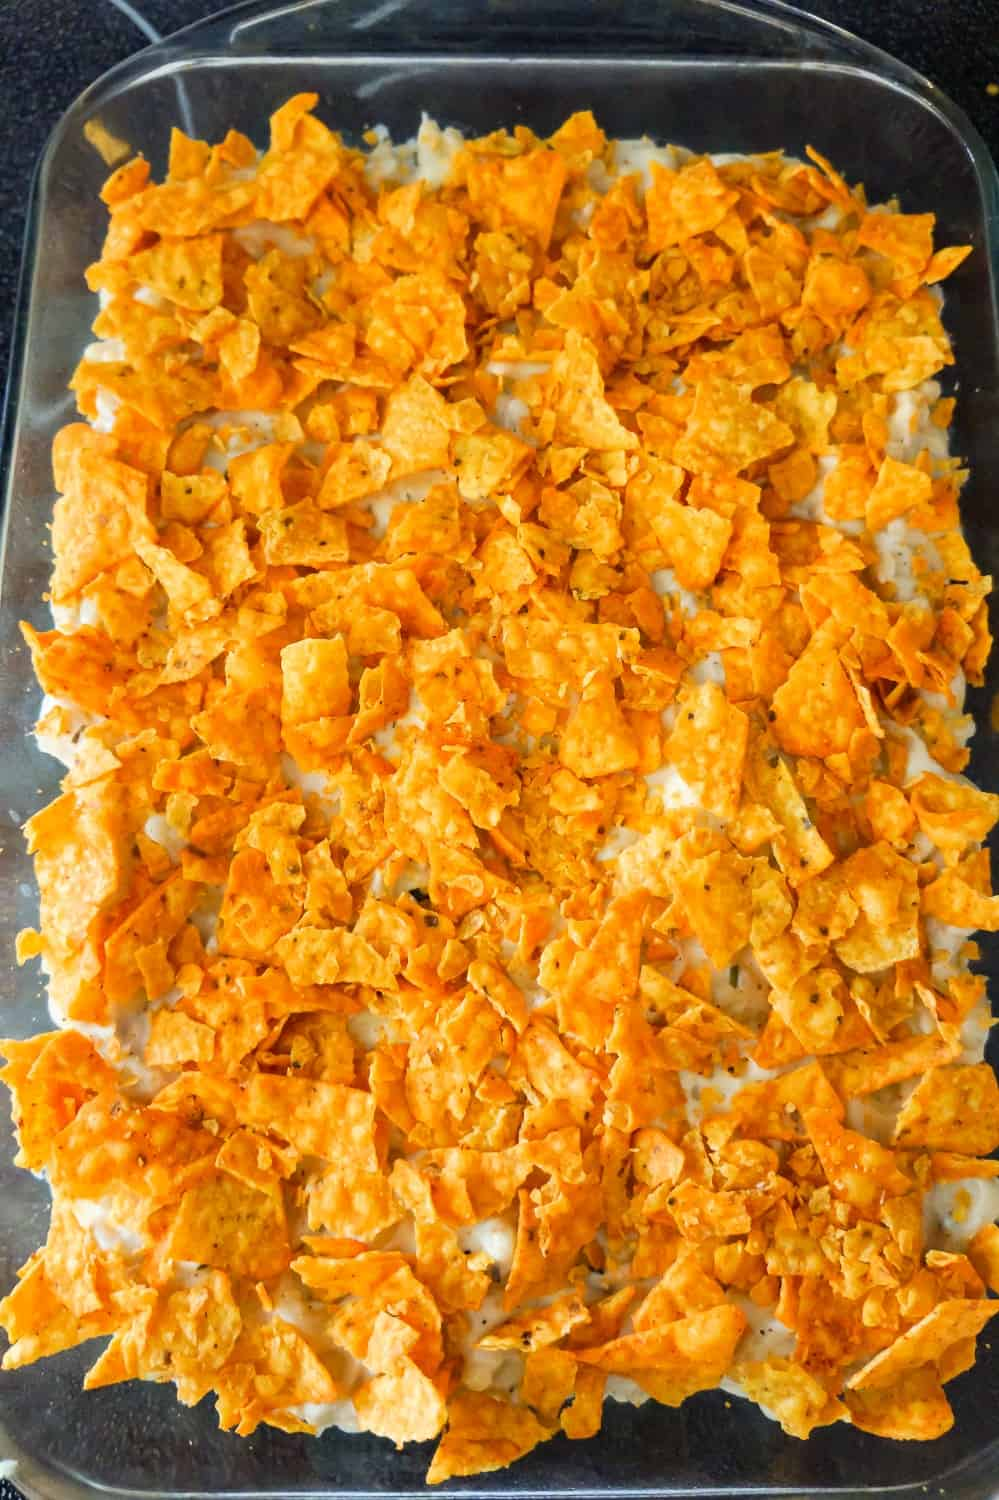 crumbled Doritos on top of mac and cheese in a baking dish